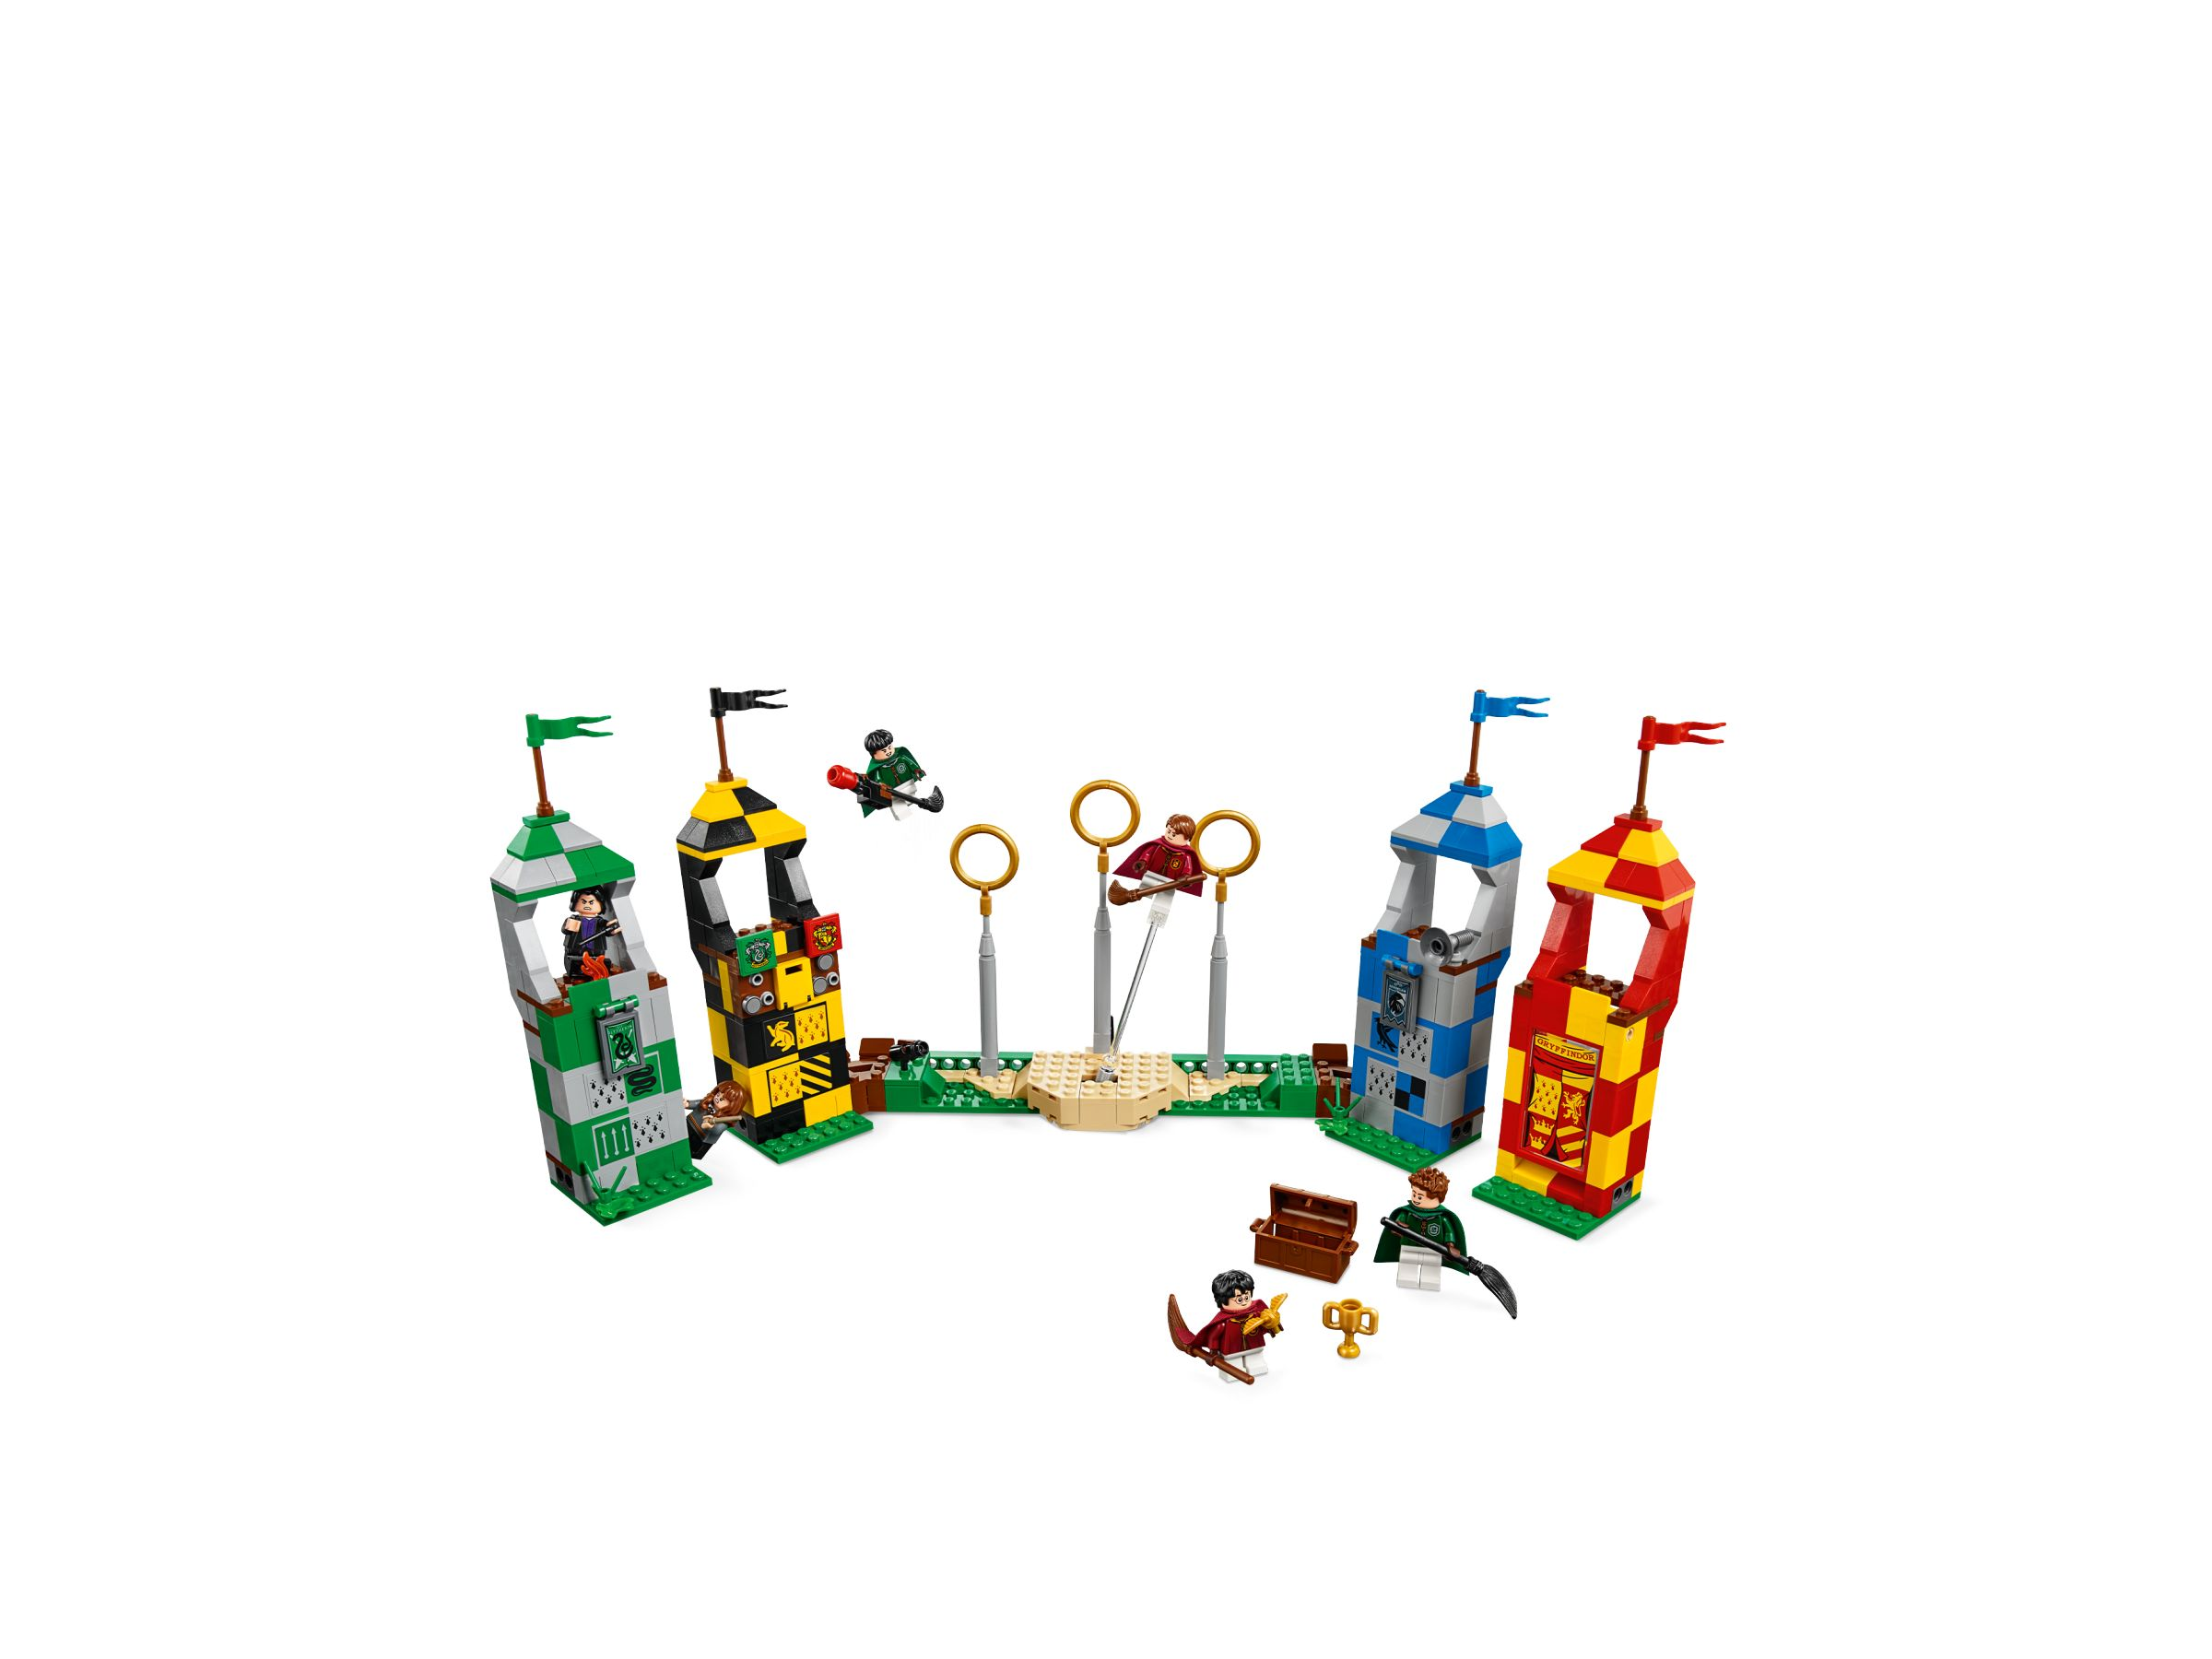 LEGO Harry Potter 75956 Quidditch™ Turnier LEGO_75956_alt3.jpg